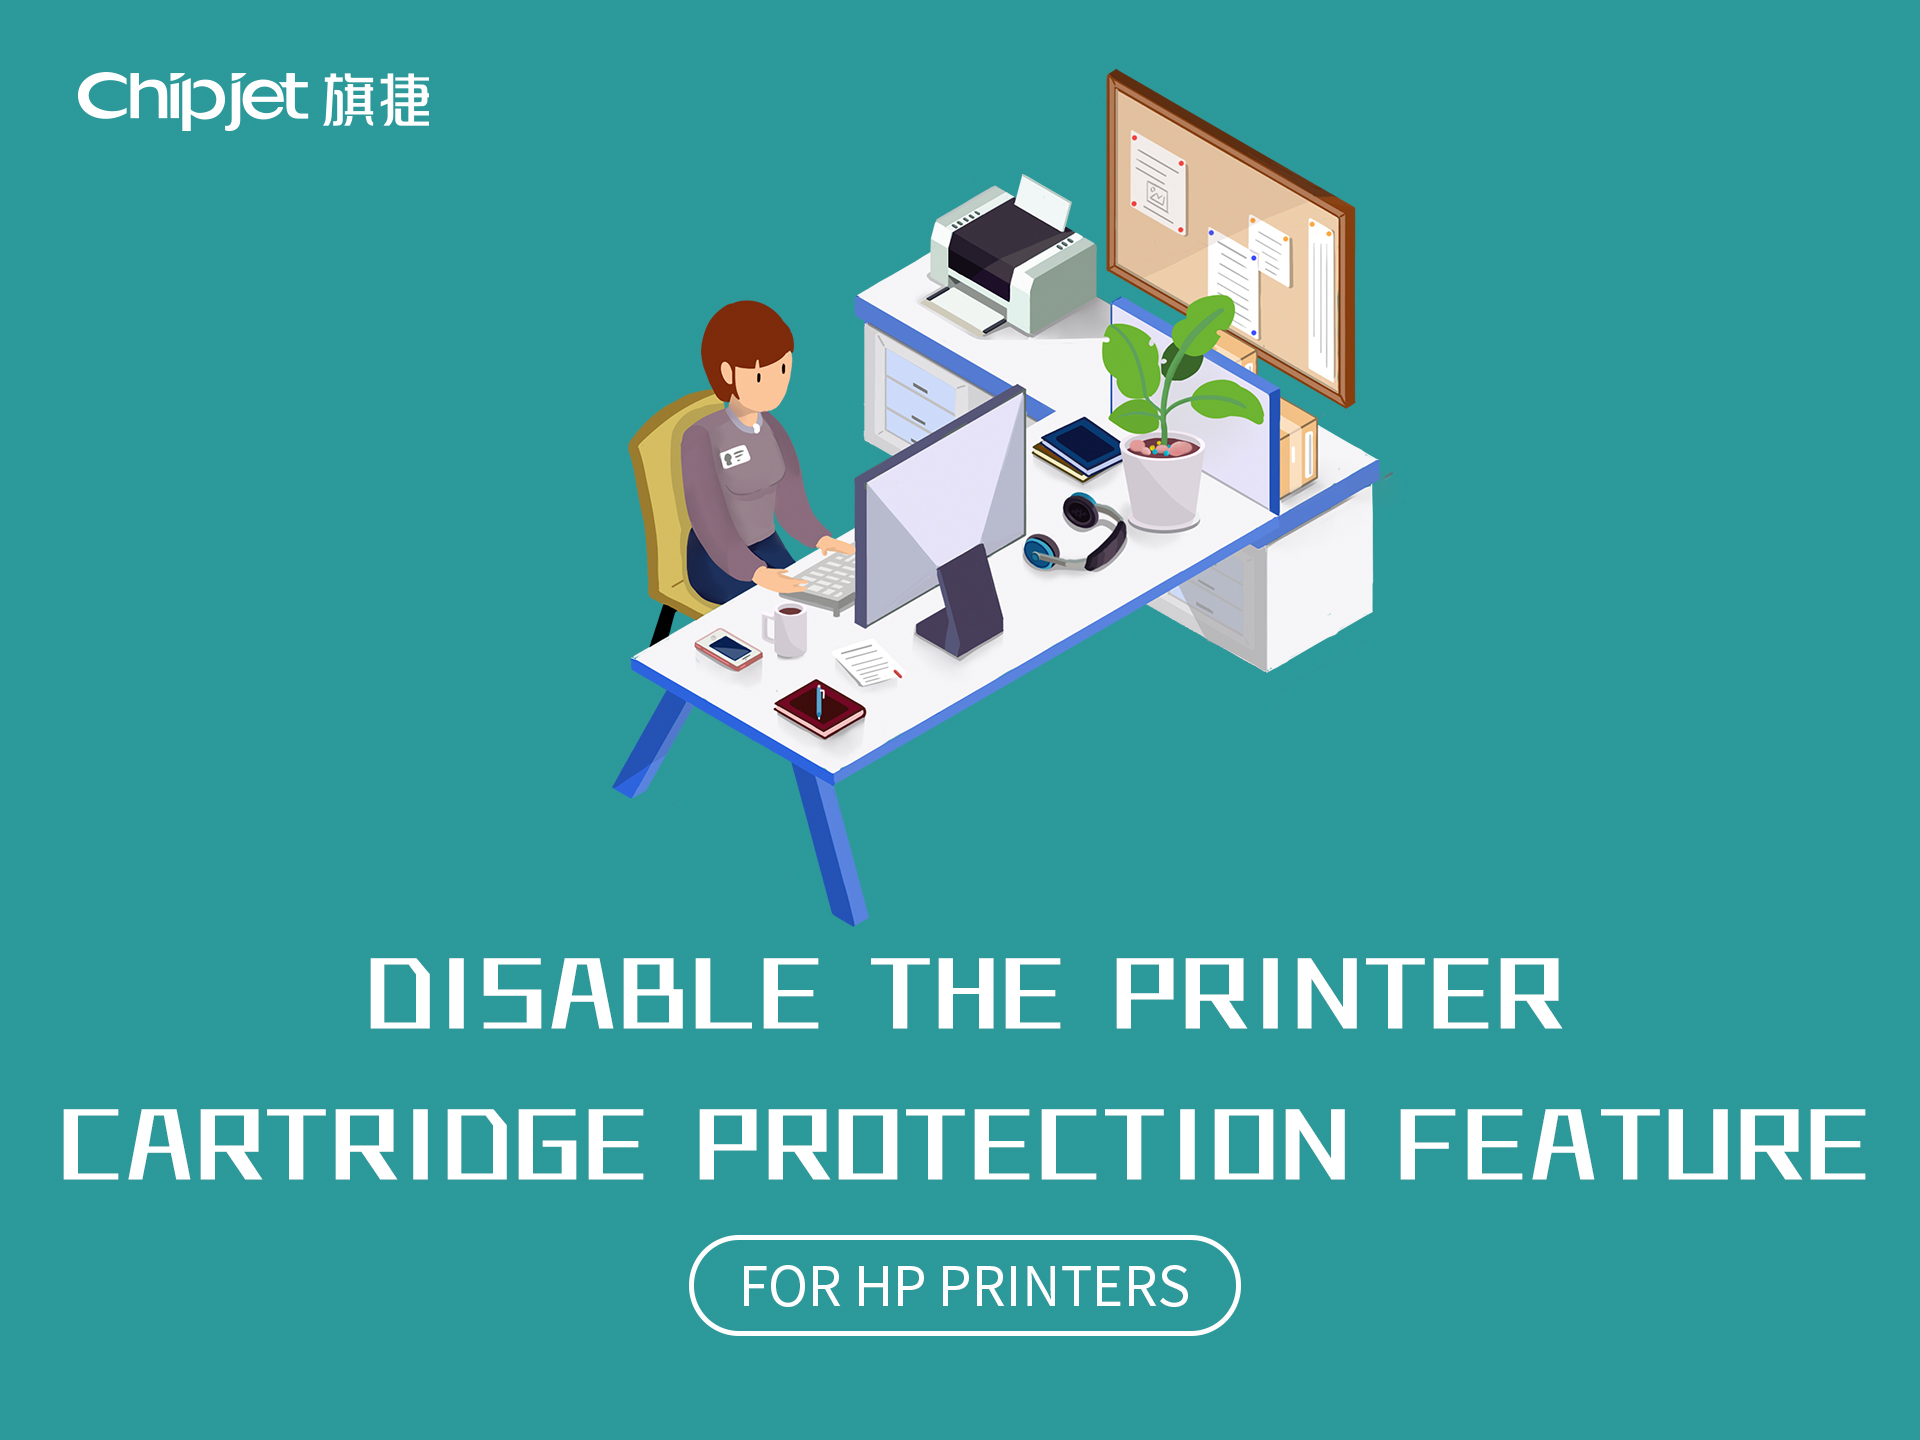 Chipjet Tips-How to Disable Printer Cartridge Protection Feature